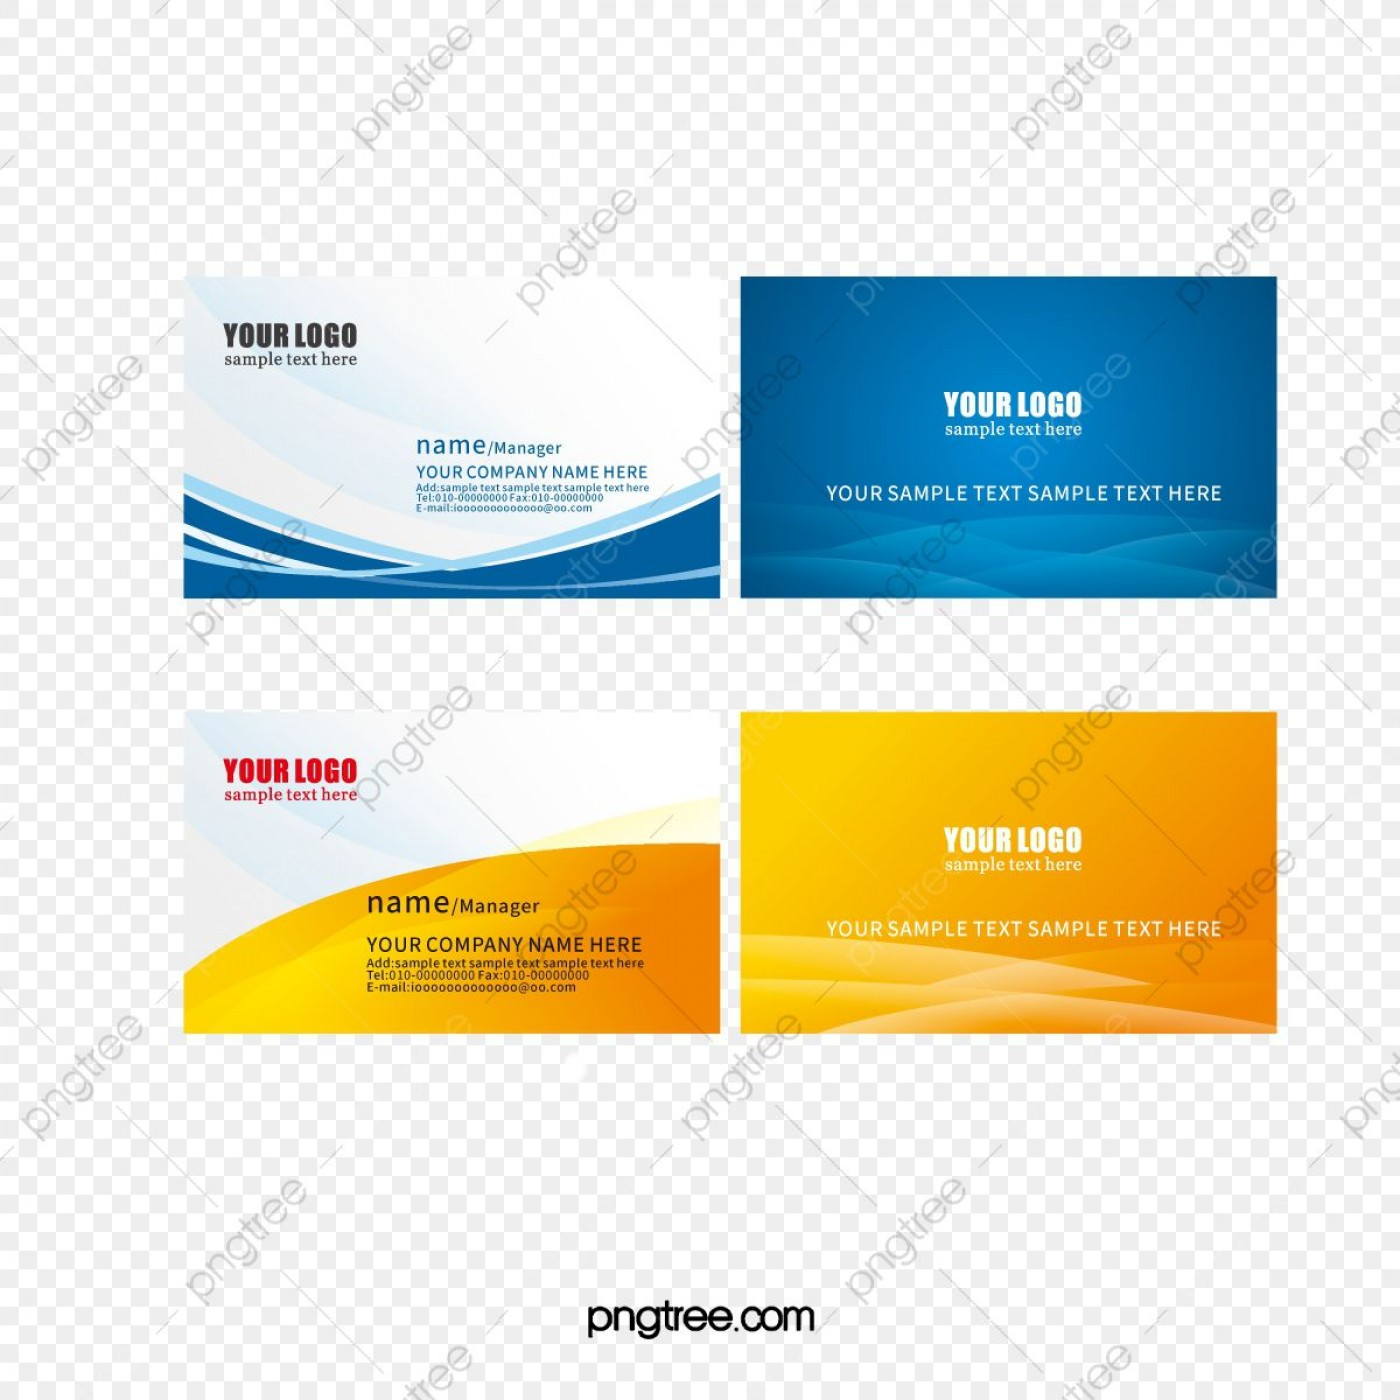 008 Best Download Busines Card Template Highest Clarity  Free For Illustrator Visiting Layout Word 20101400